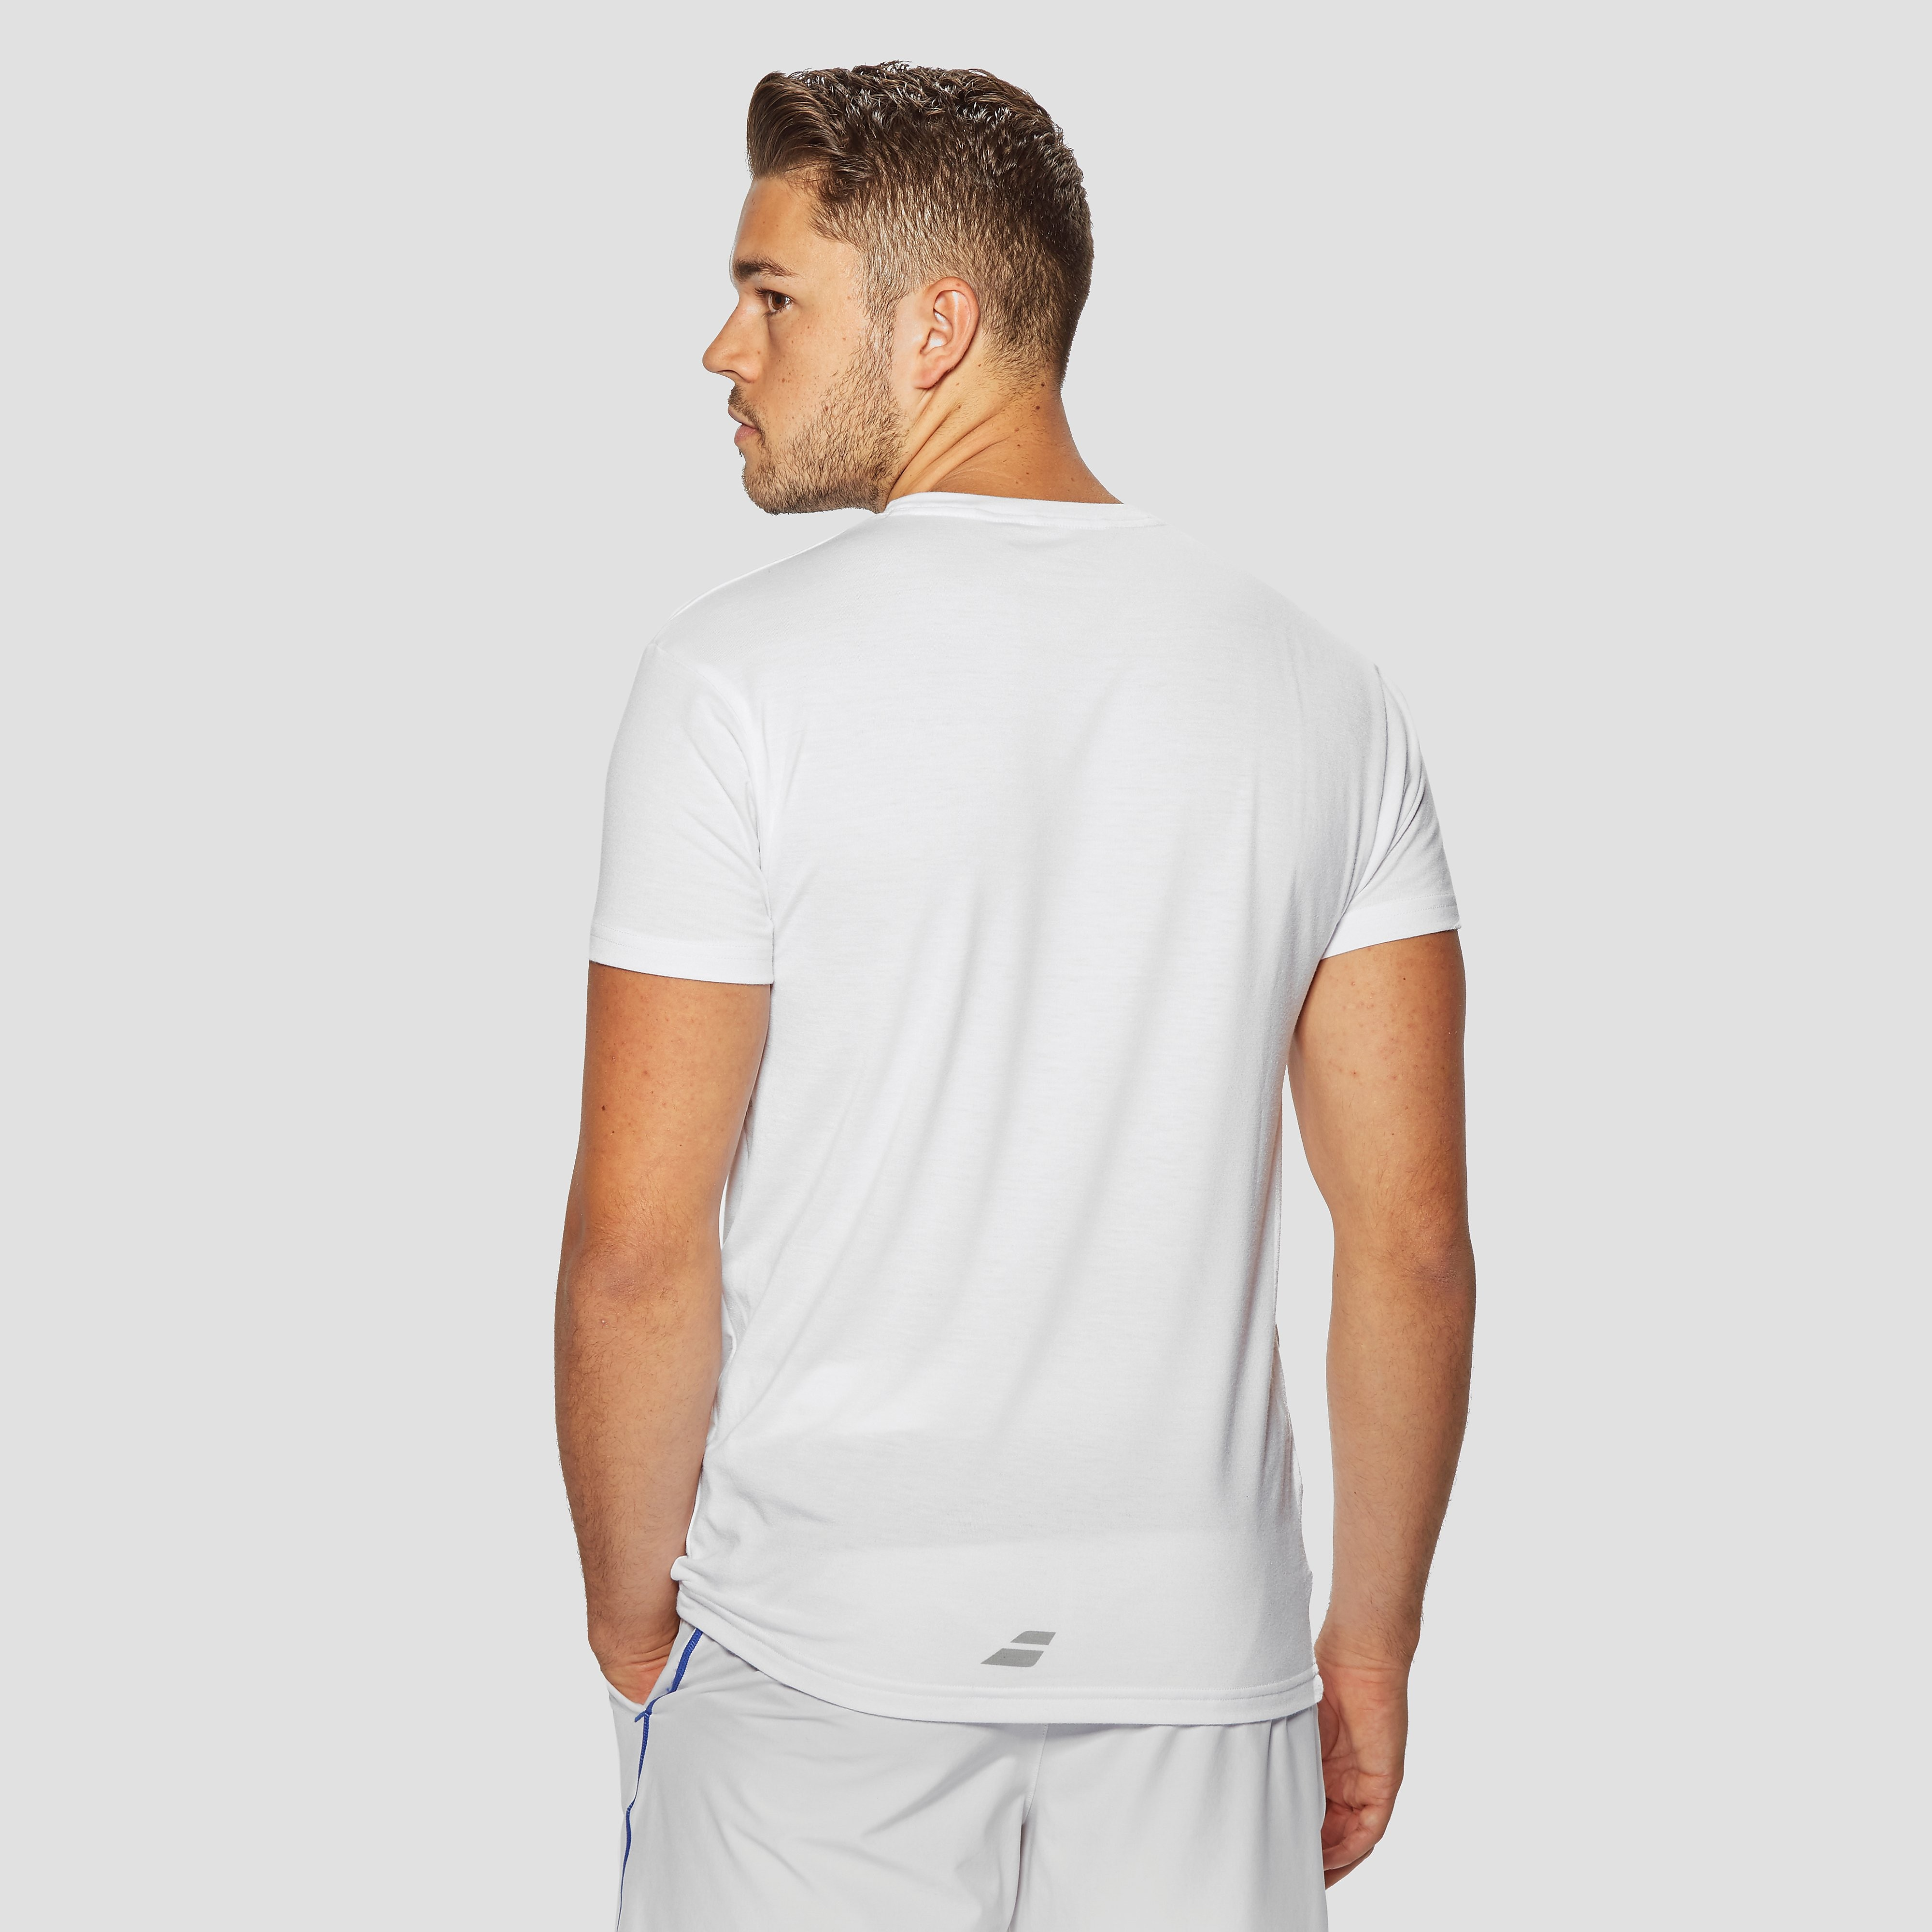 Babolat Wimbledon Pure Men's Tennis Shirt